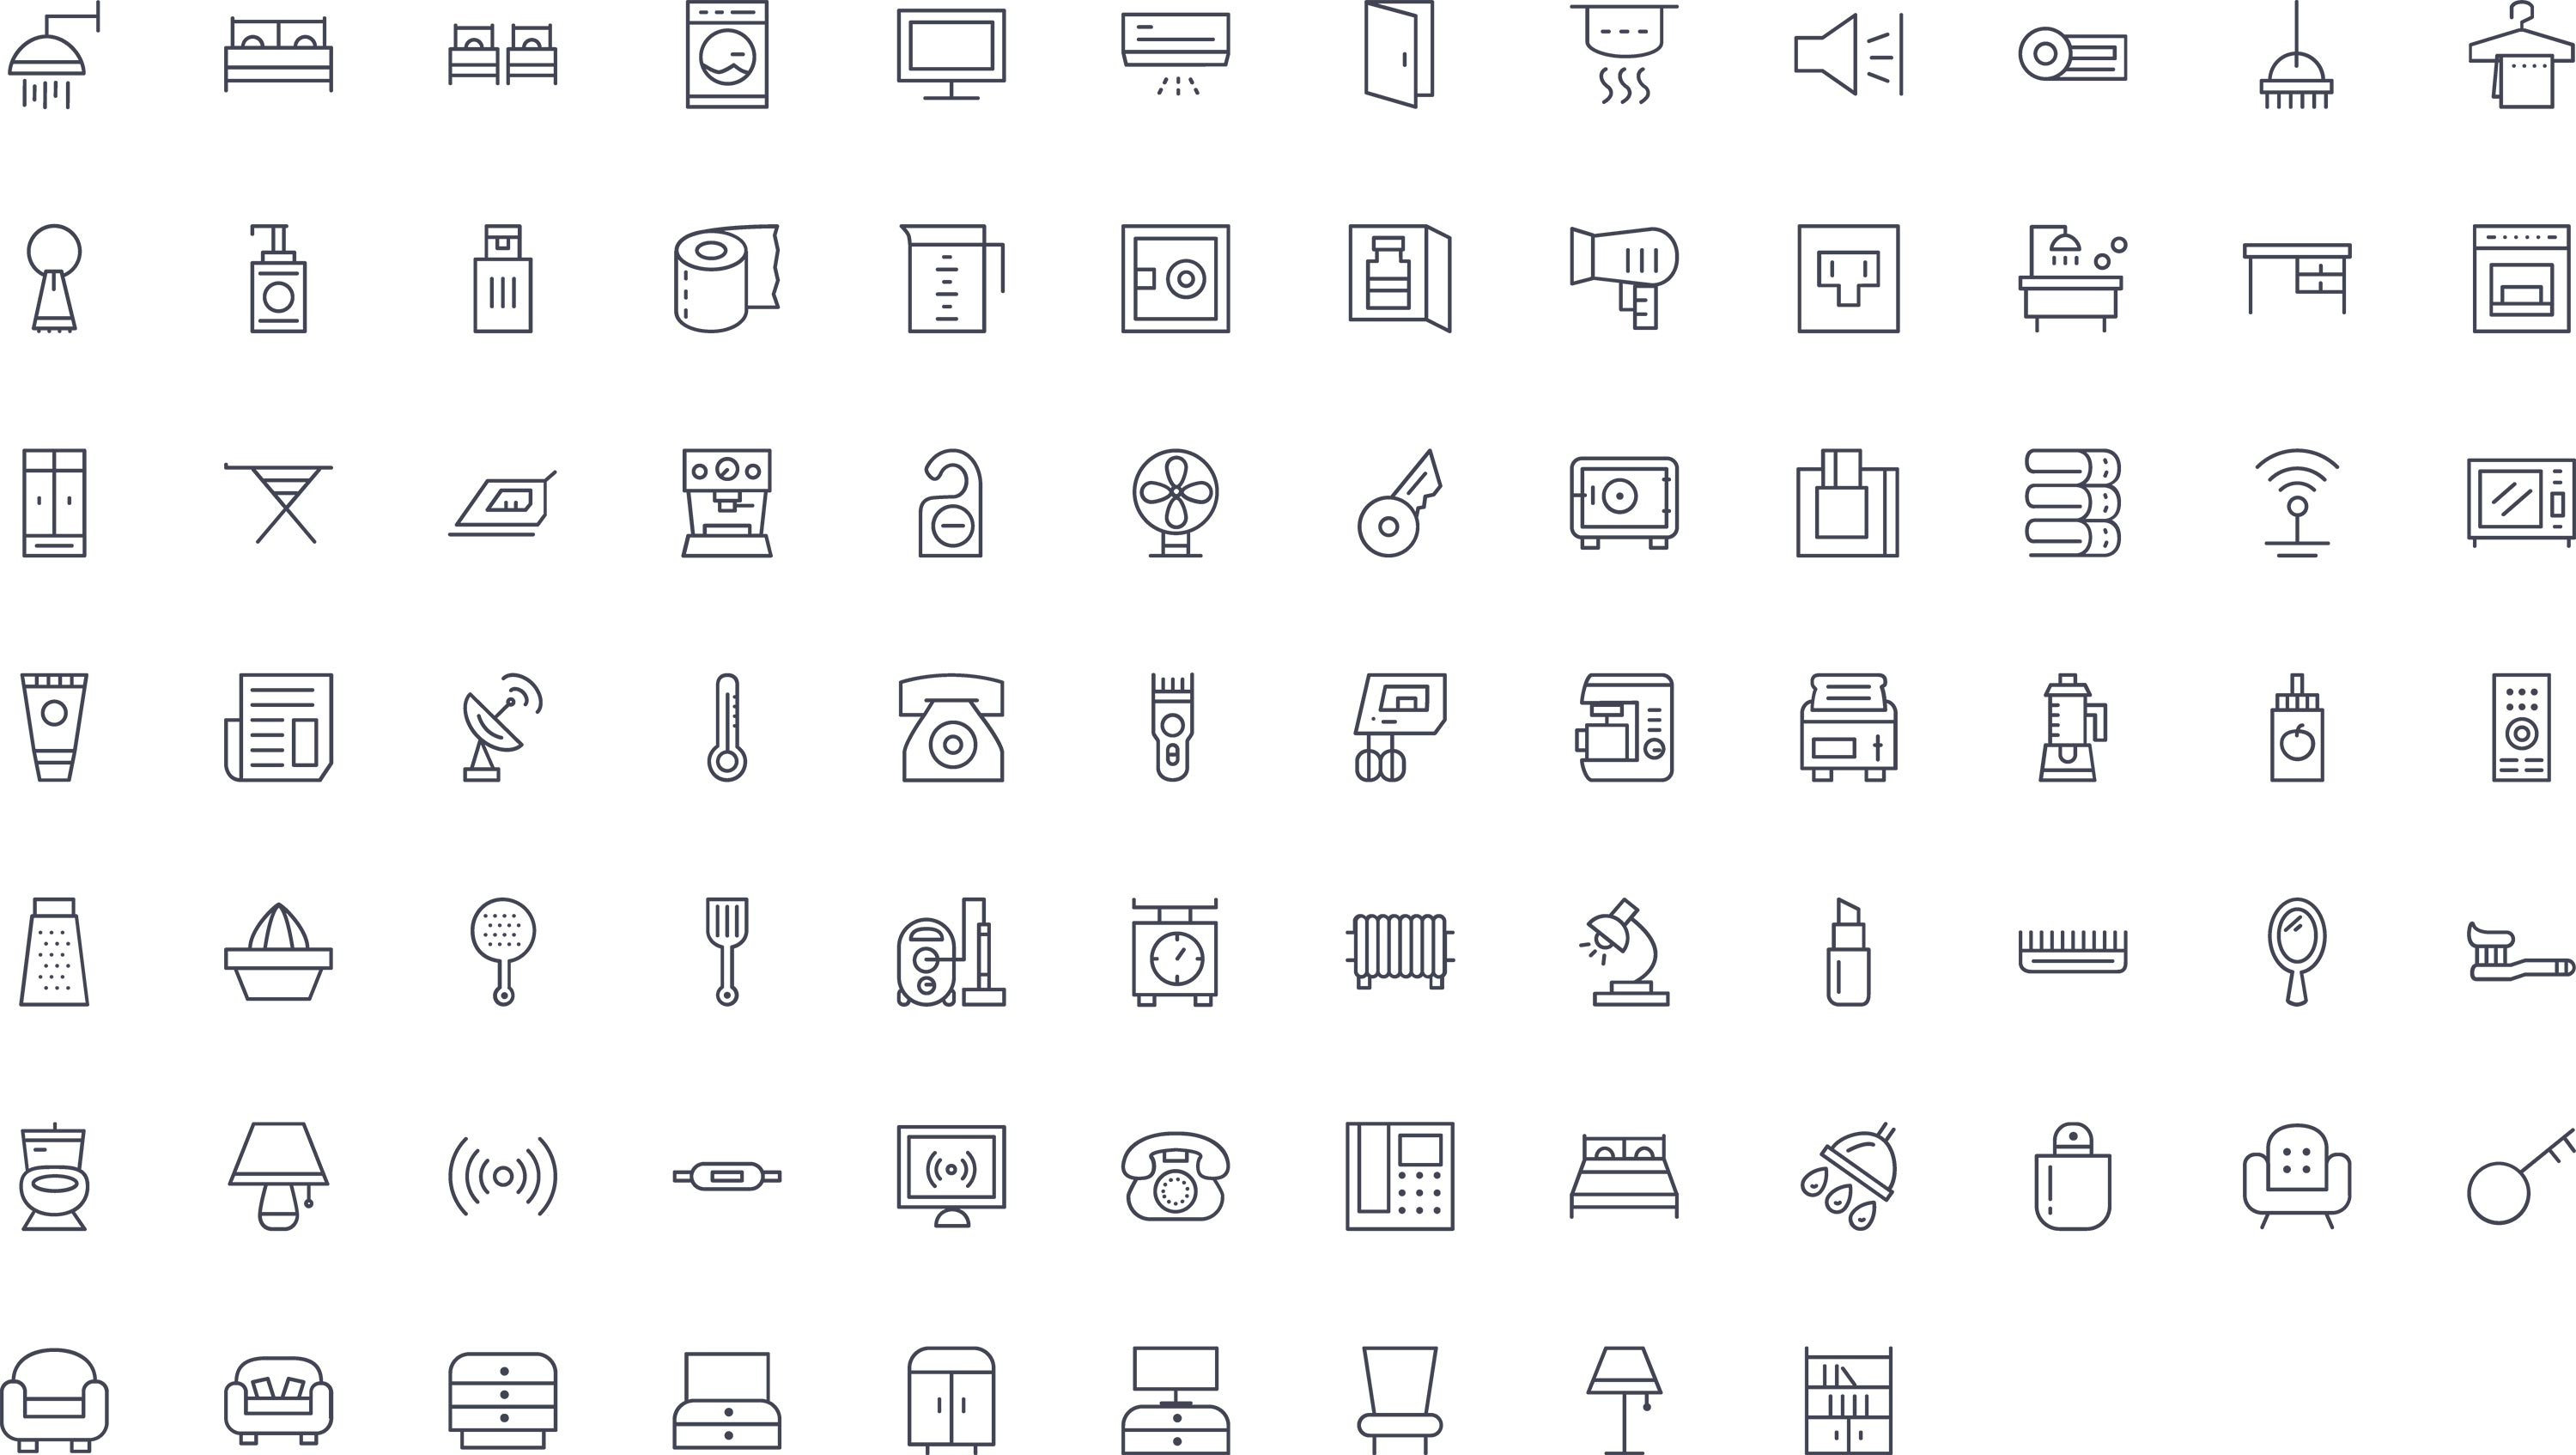 Room Facilities Line Icons